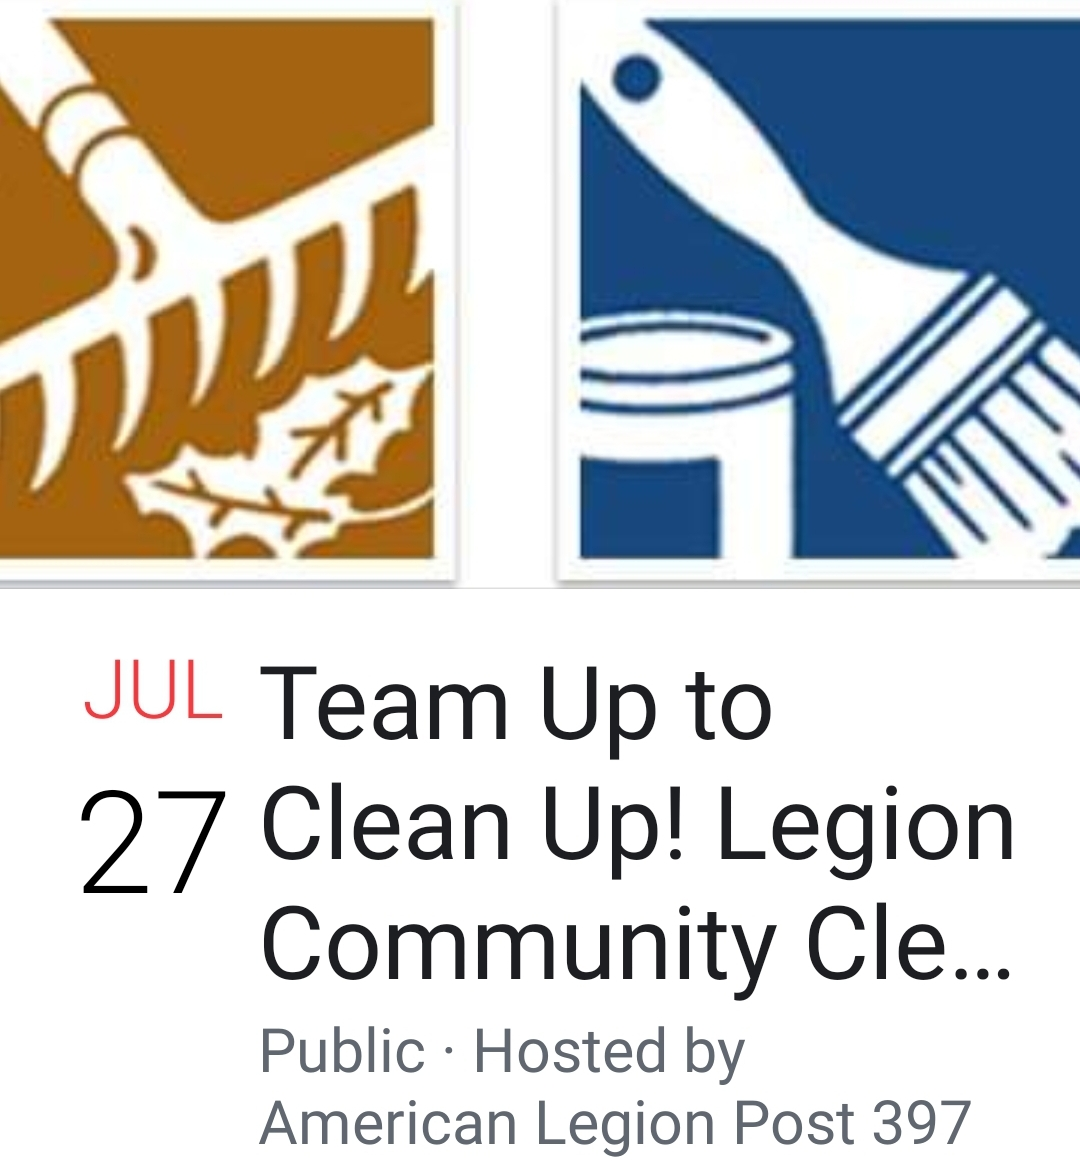 420 Support Group Community outreach & cleanup